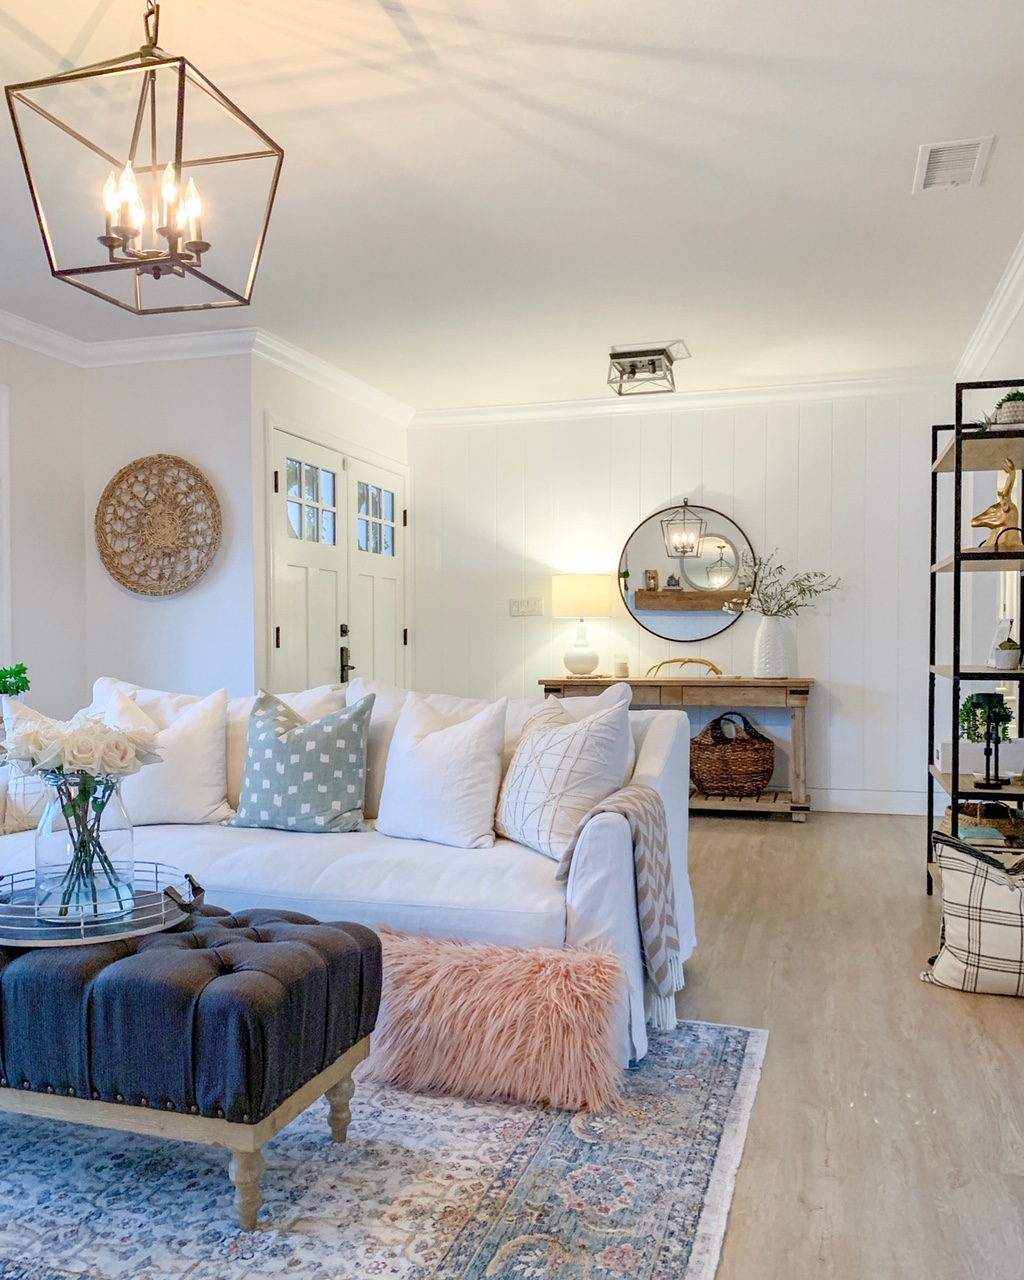 My Light And Airy Living Room Transformation: Bright + Airy Living Room Refresh: Top 5 FAQ's Answered